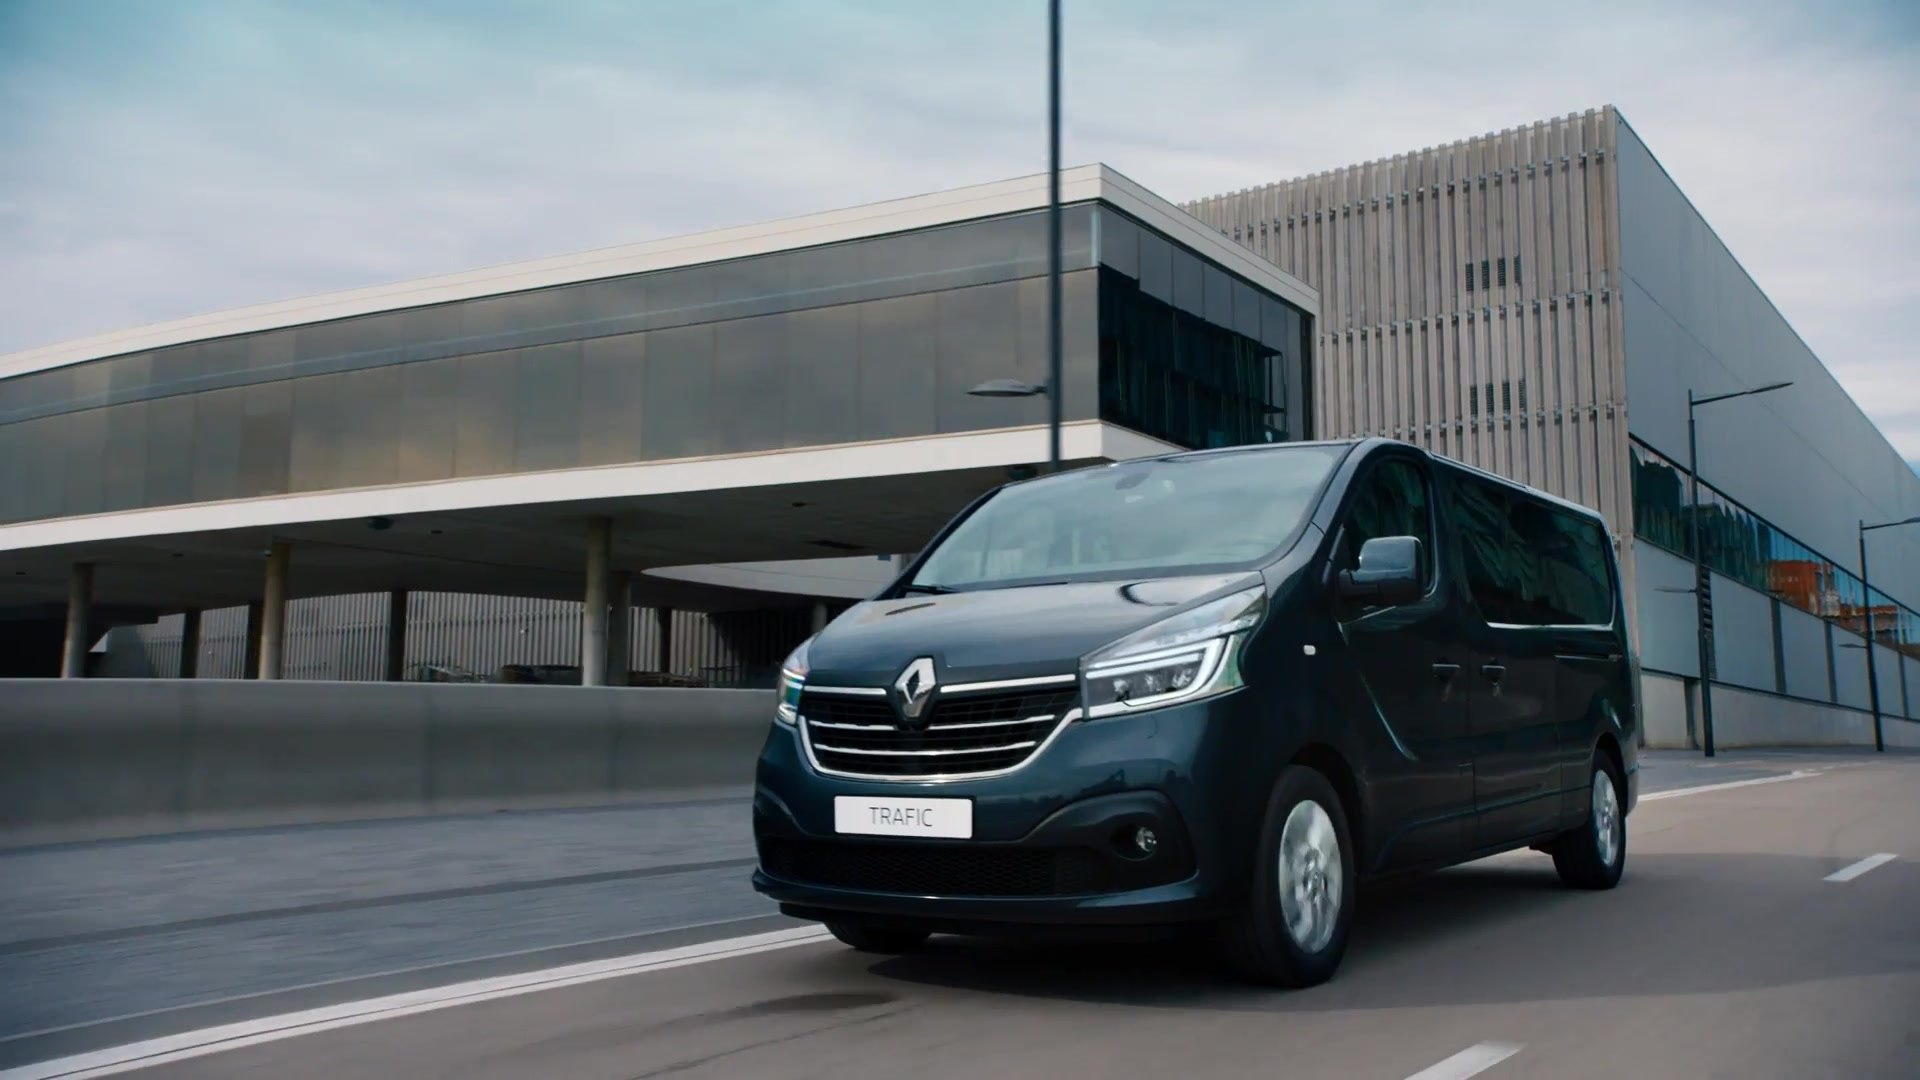 2019 New Renault Trafic Trailer